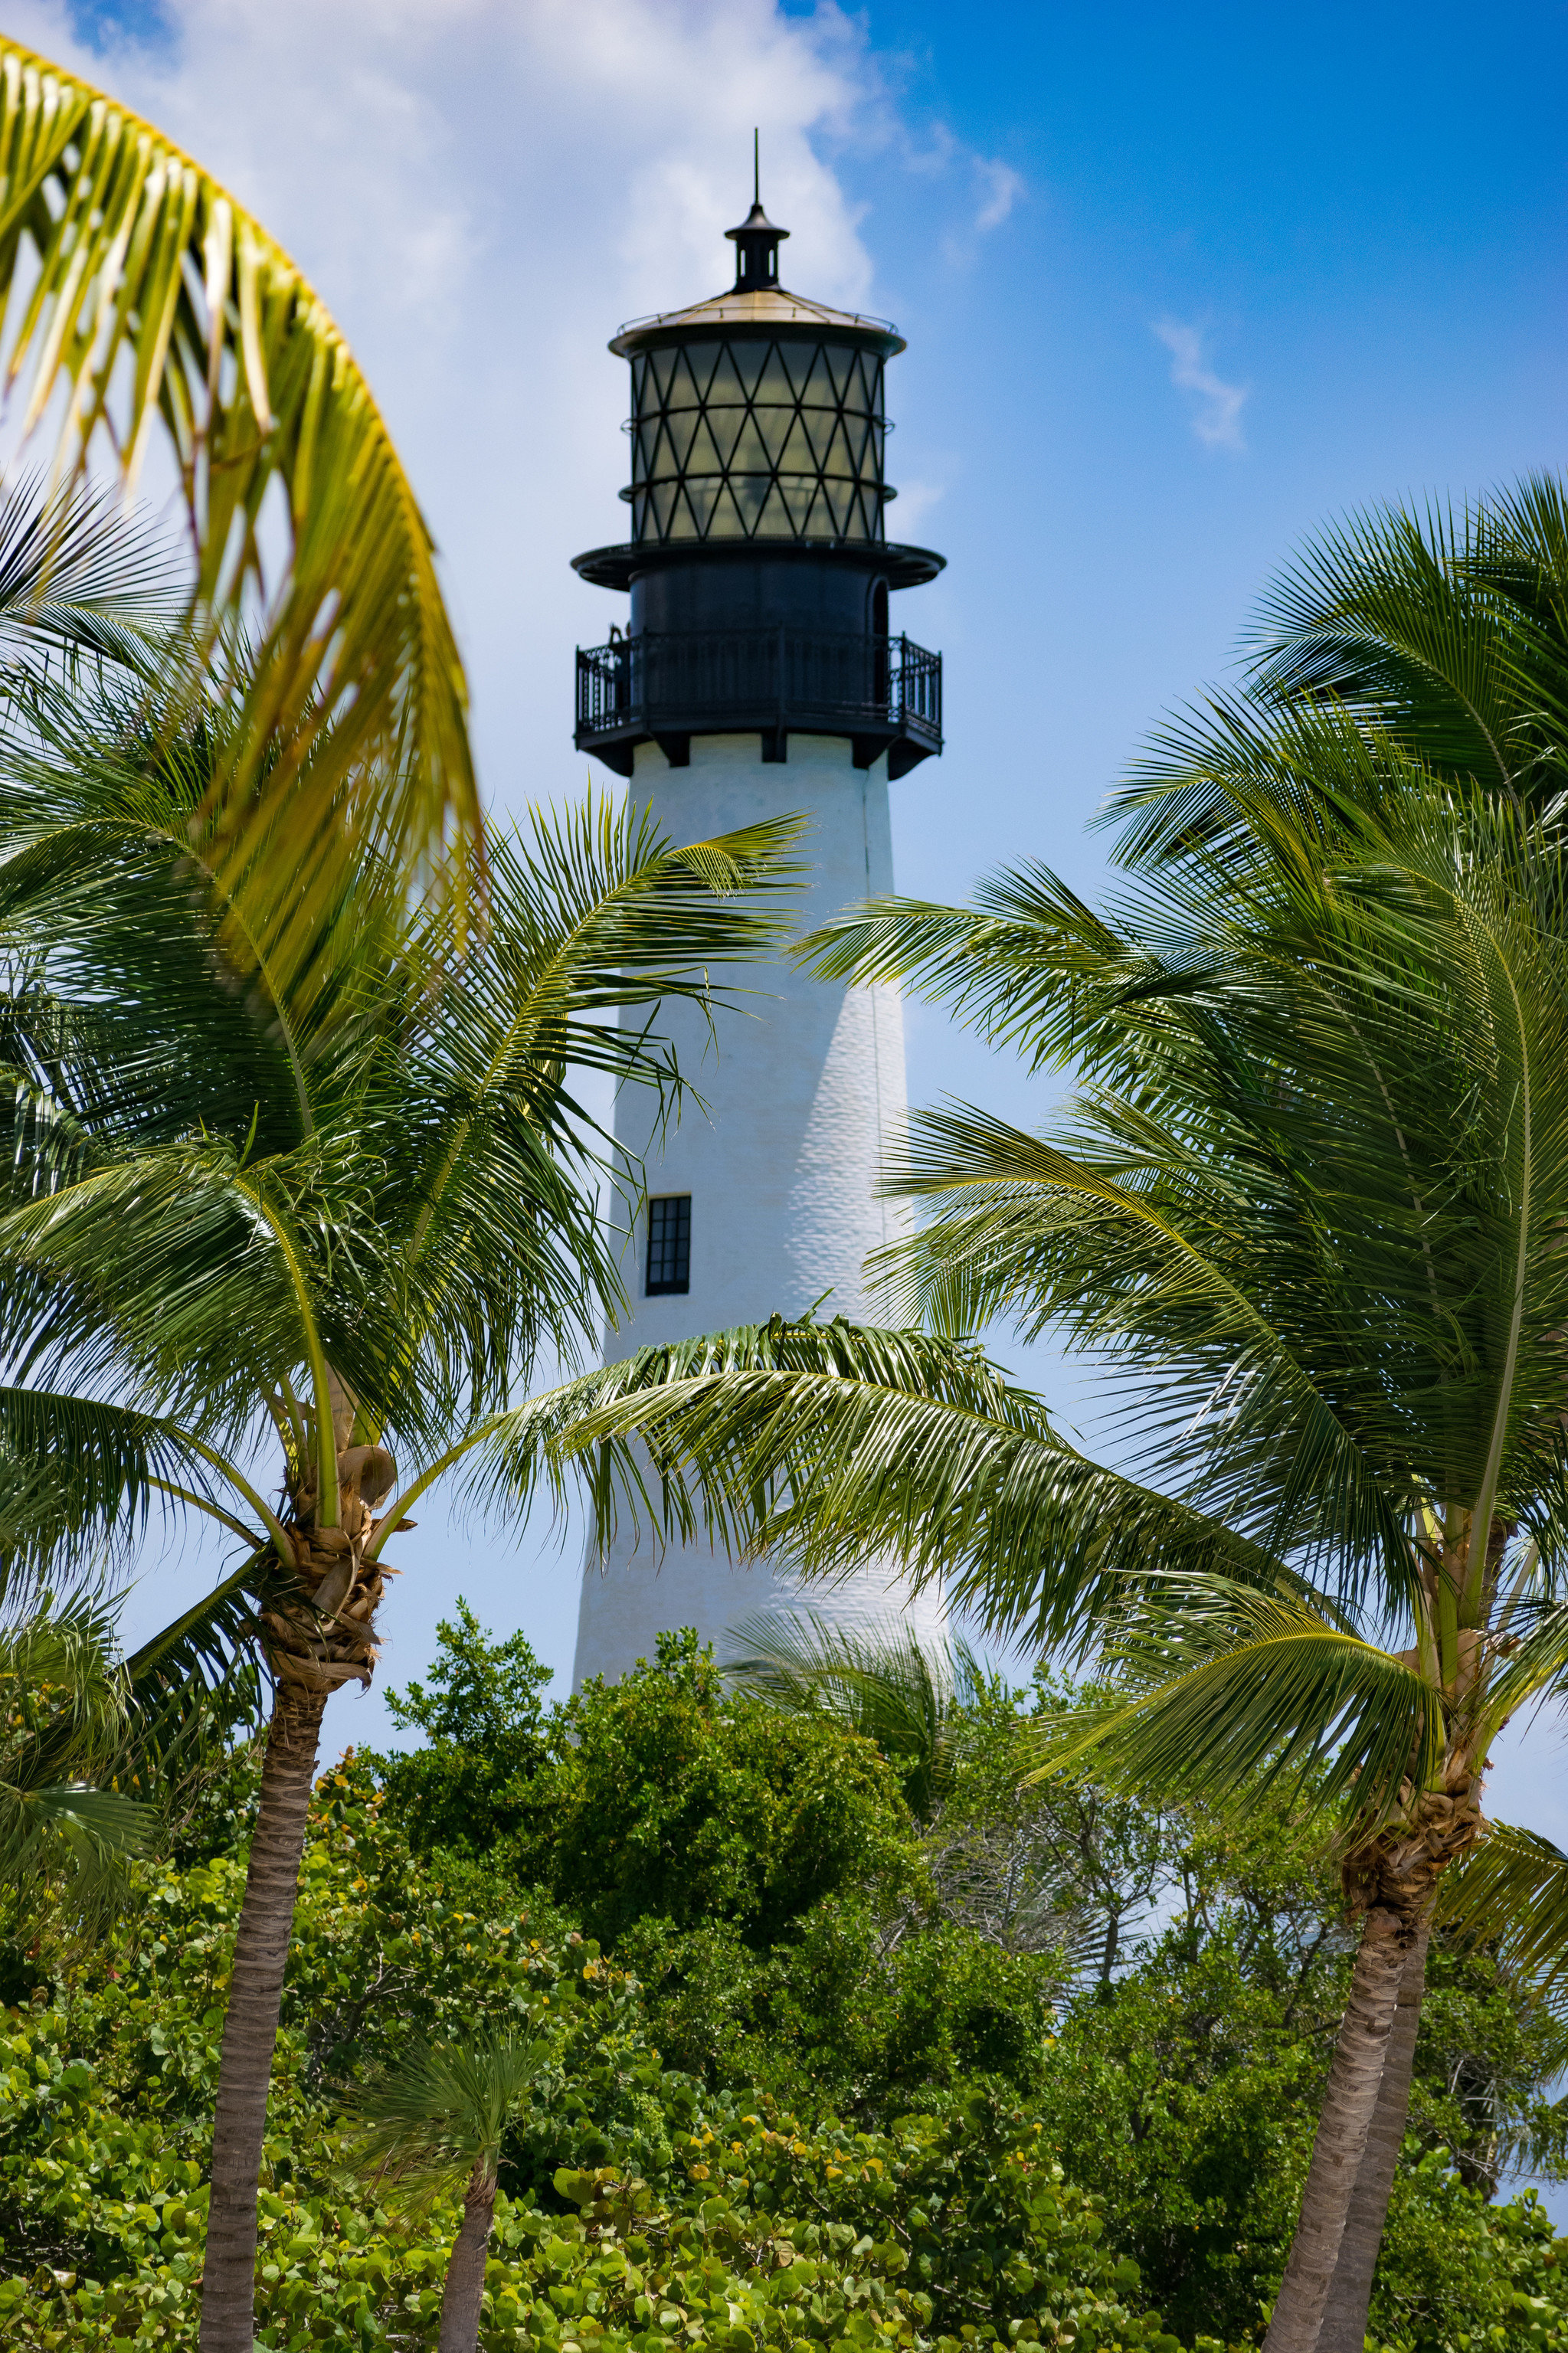 Trip Ideas tree outdoor sky tower green landmark palm tree arecales leaf tropics plant tourist attraction water lighthouse tourism grass palm